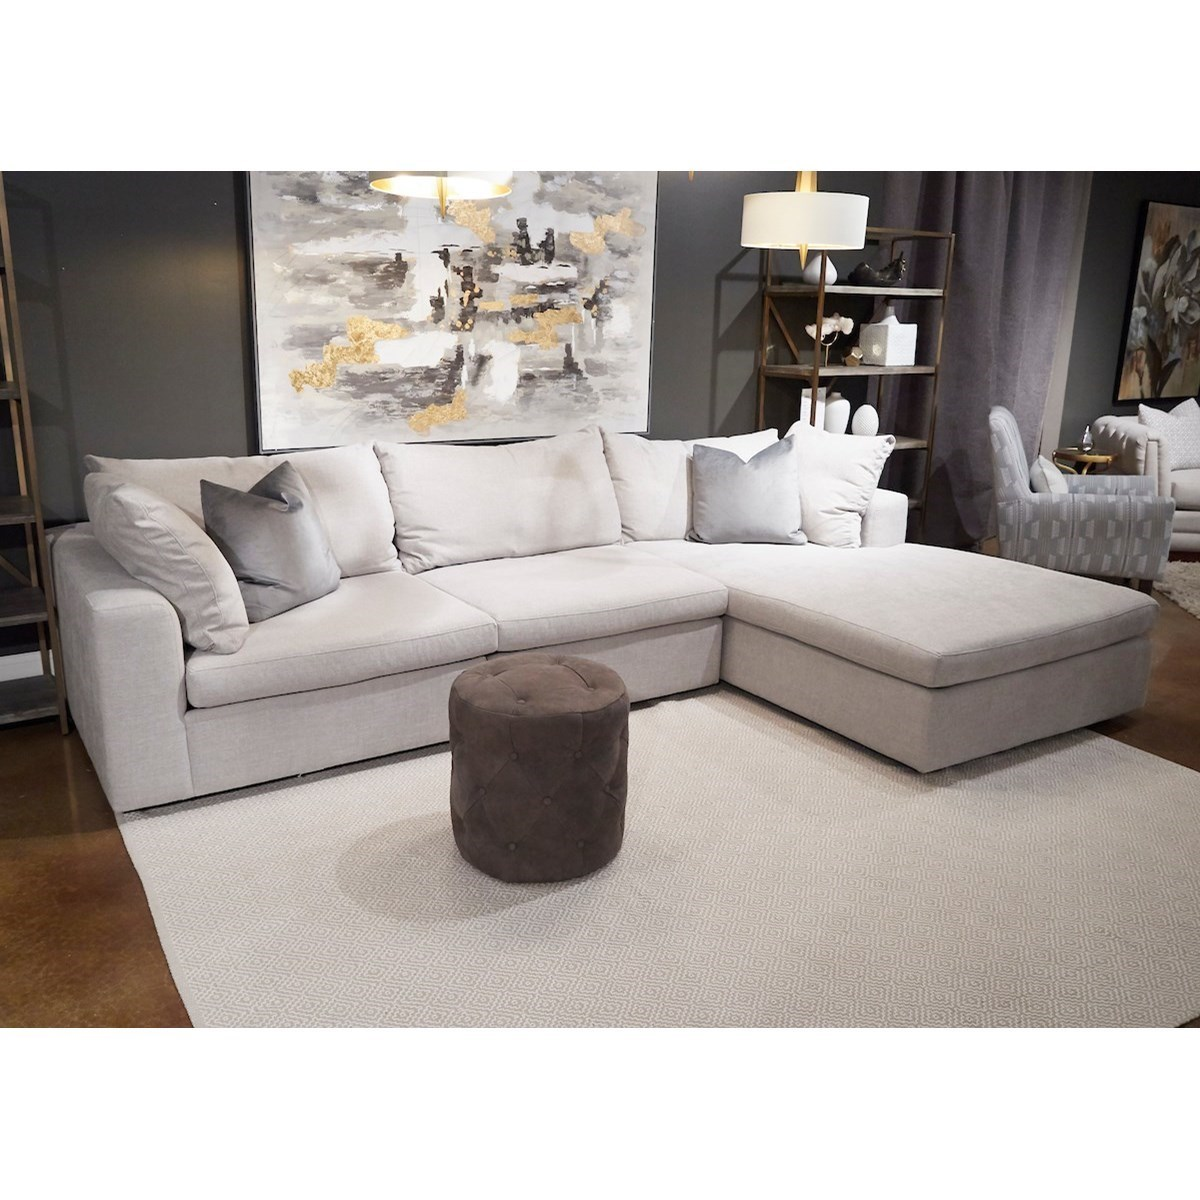 arnell 3 seat sectional sofa w raf chaise